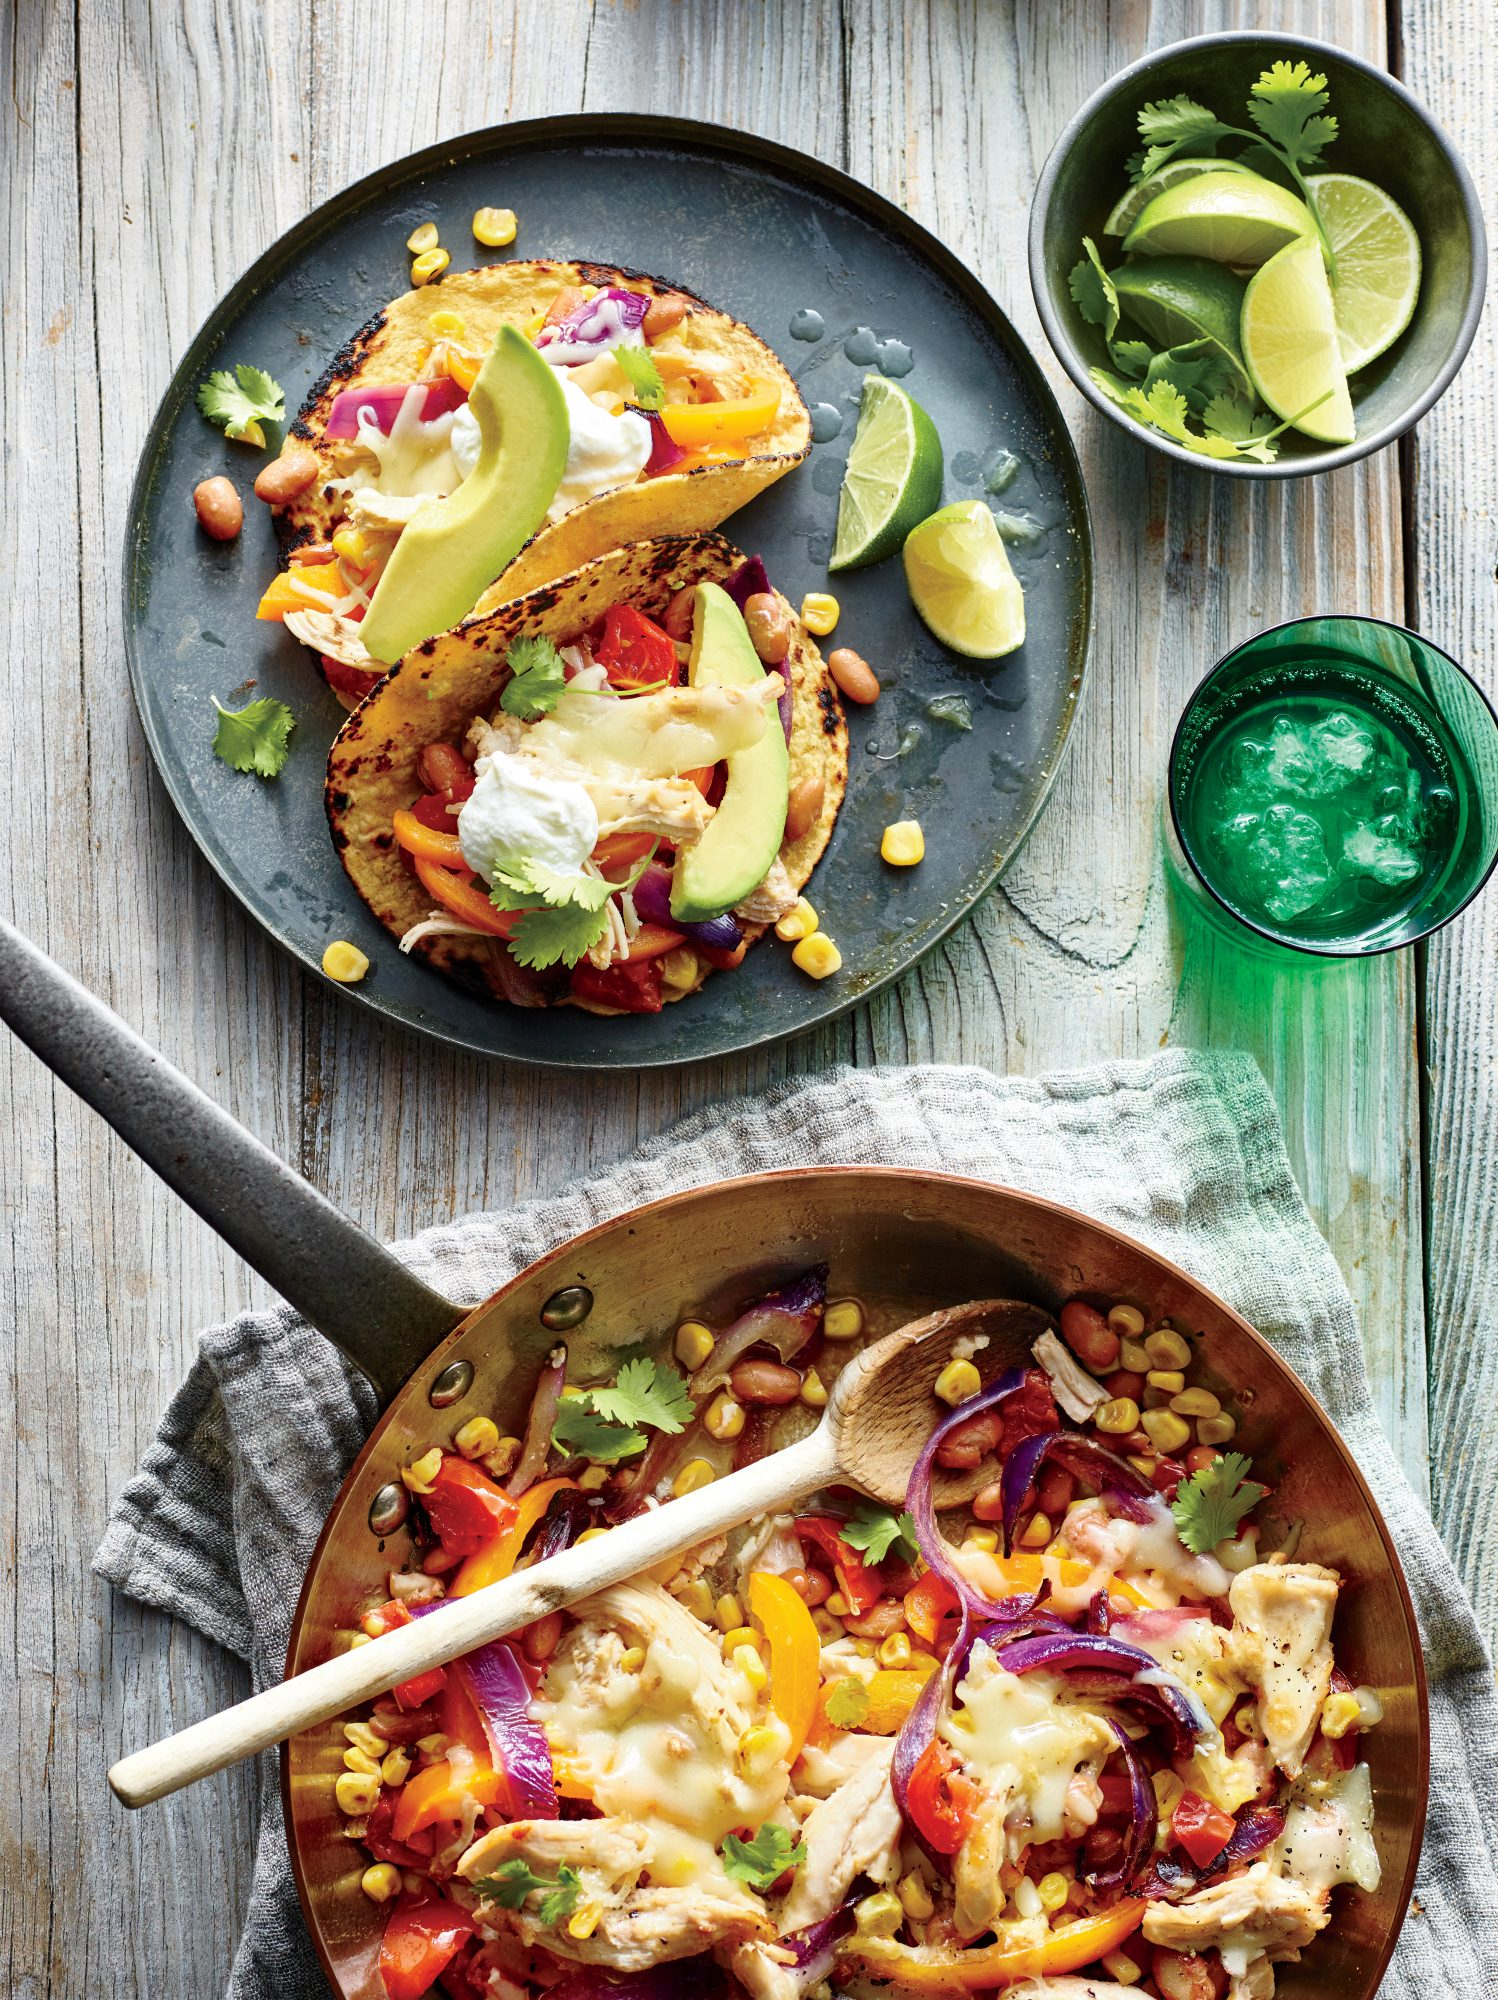 ck-Cheesy Chicken Fajitas Image